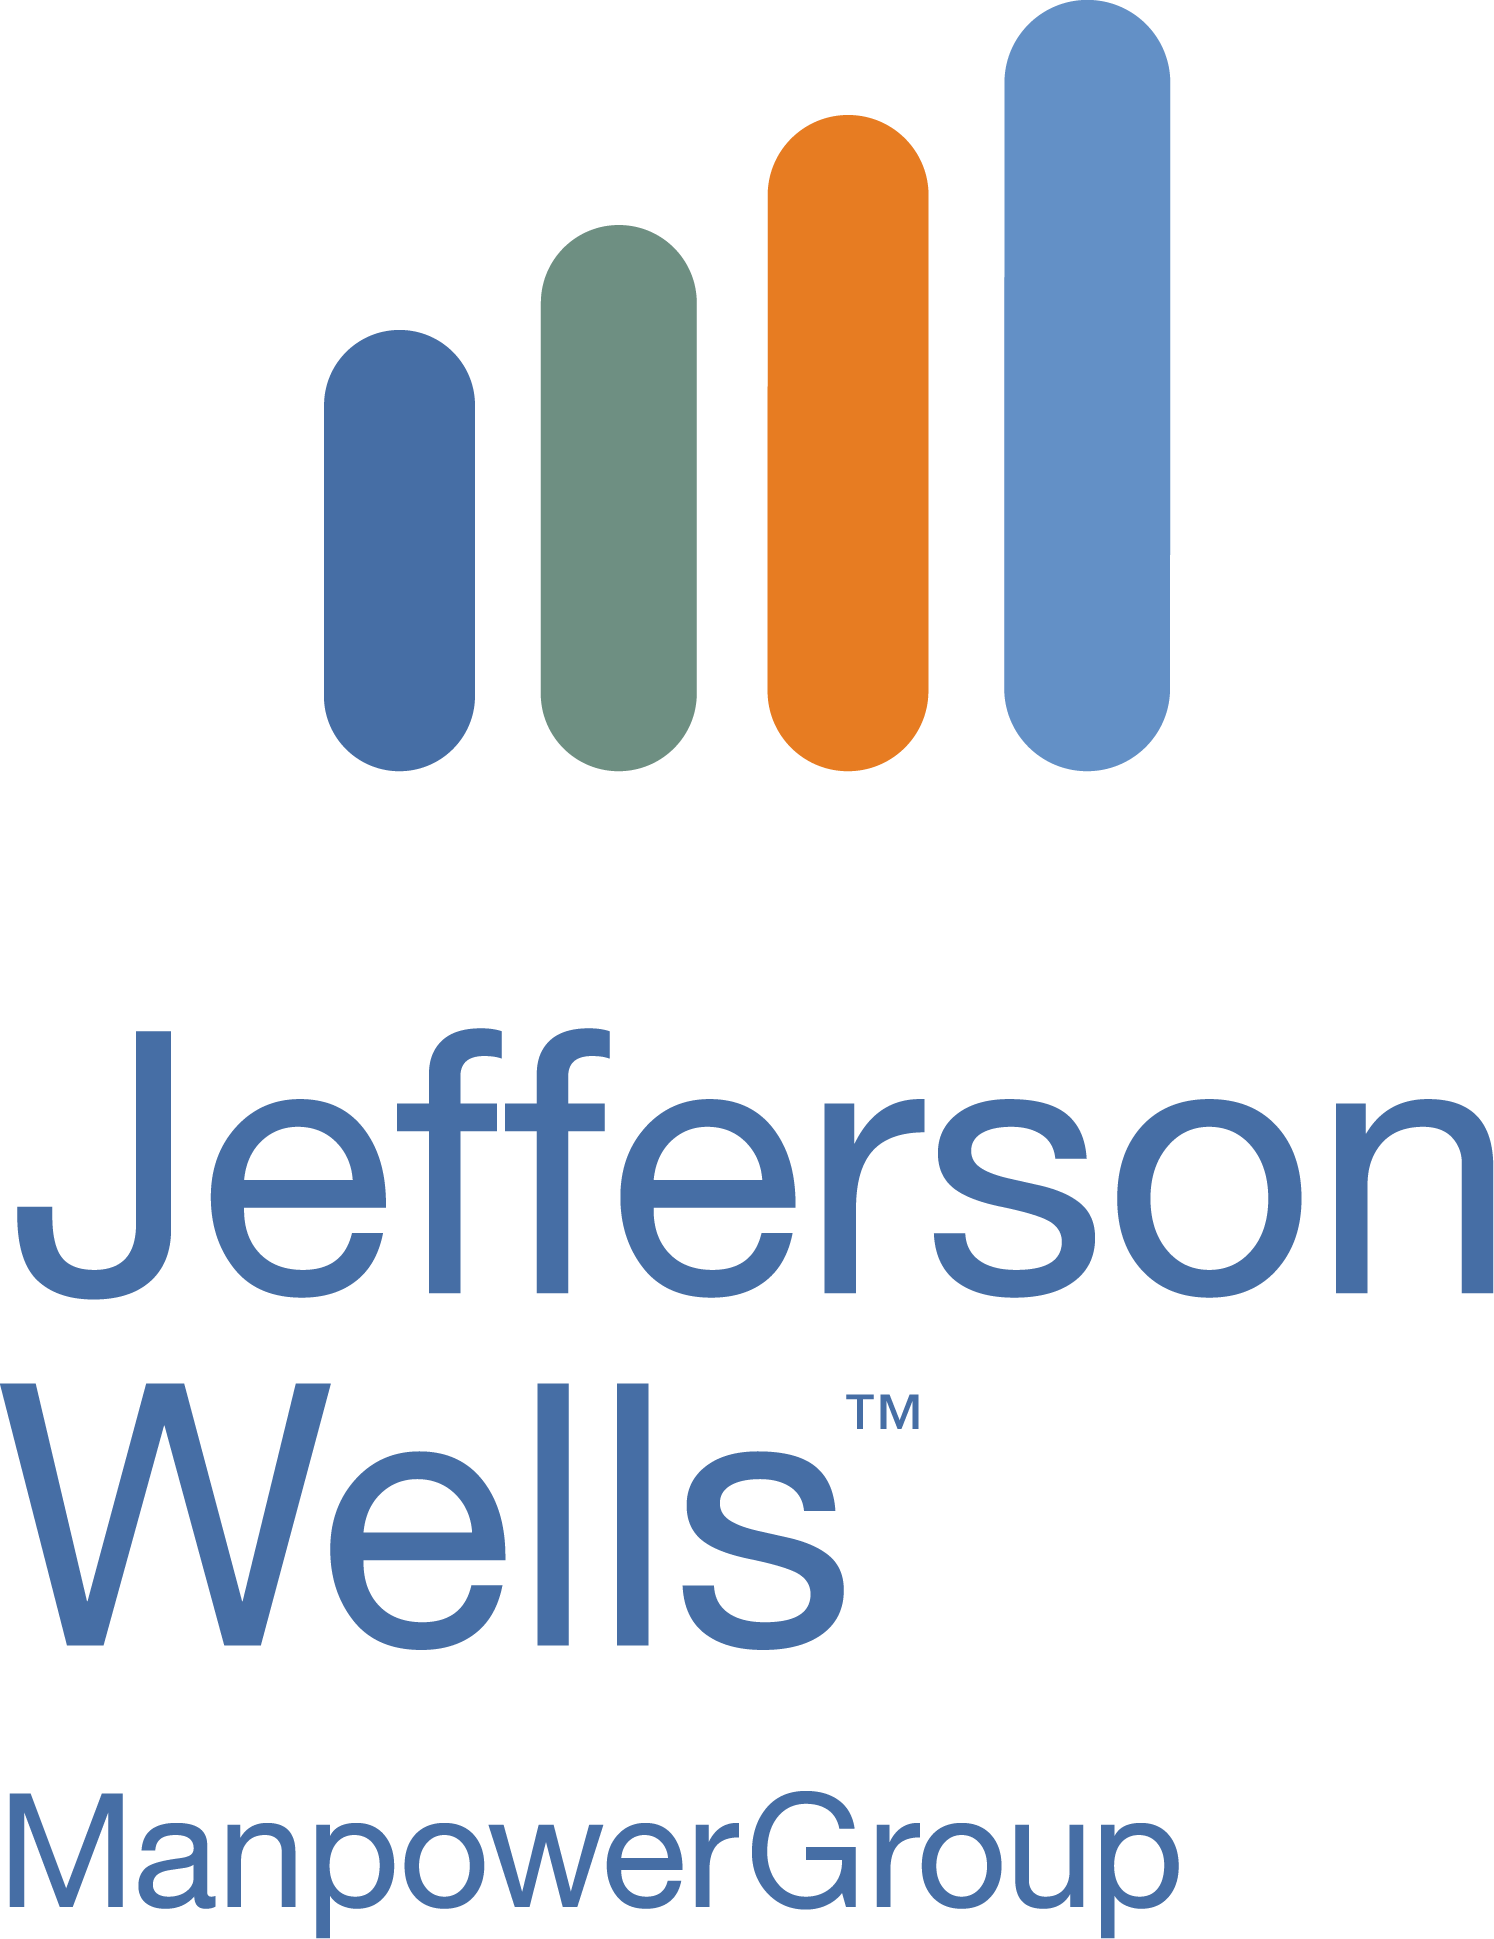 Jefferson Wells konsulentoppdrag